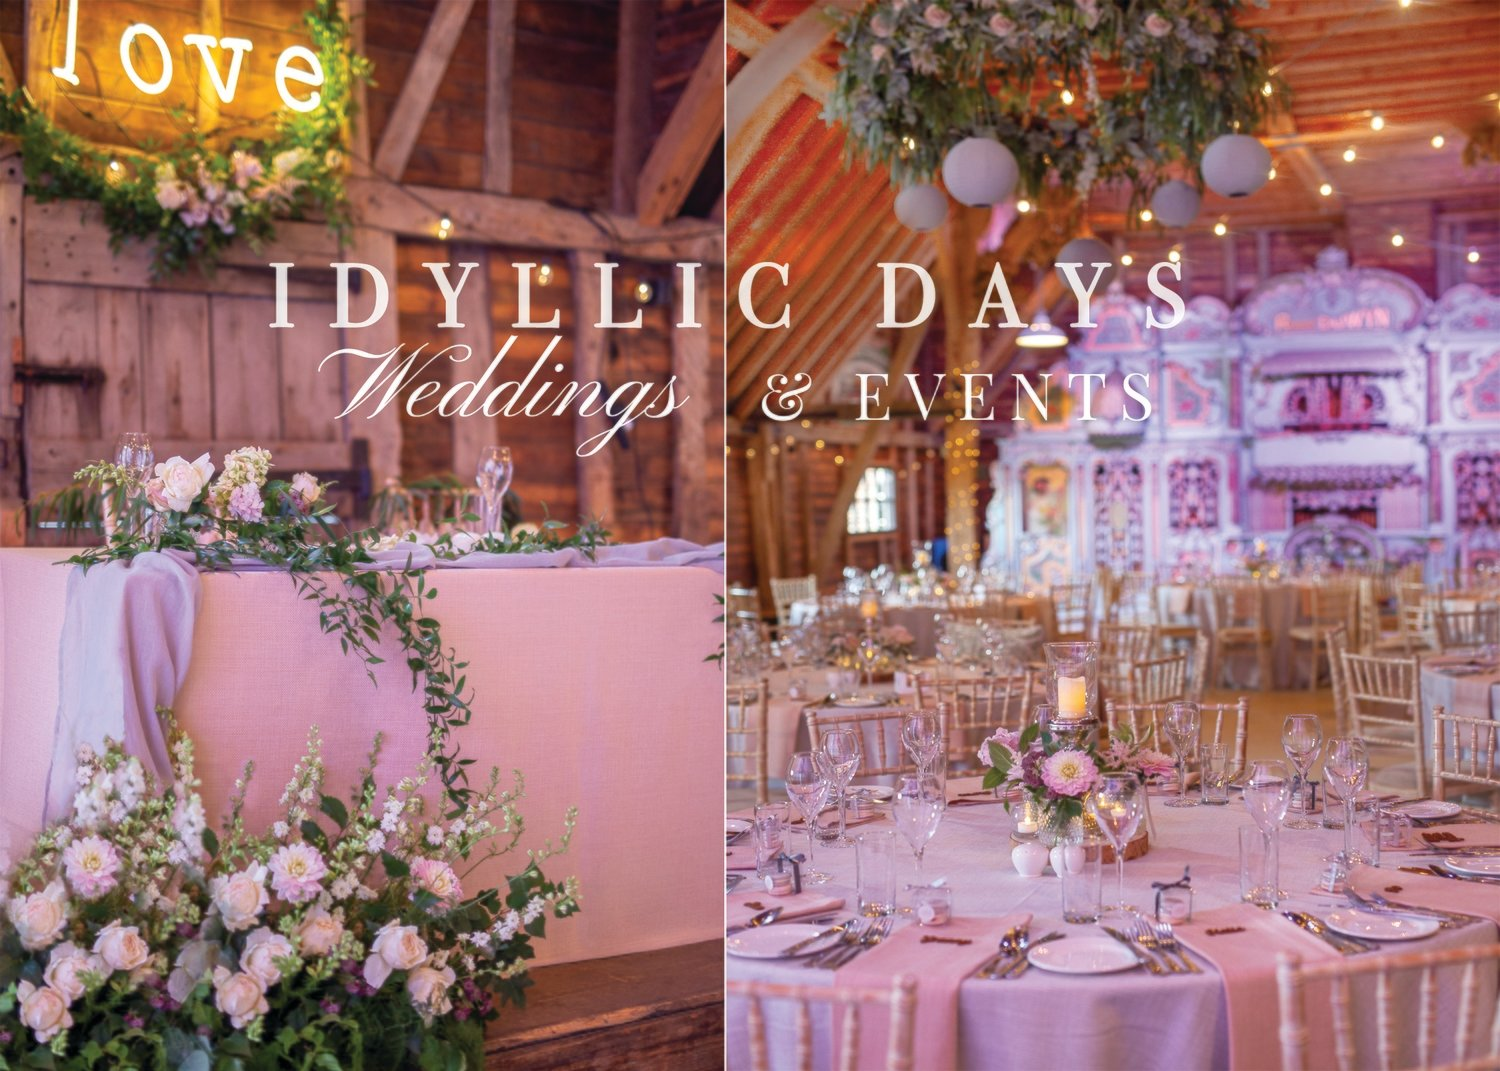 SHOWSTOPPER FOLIAGE & FLORAL HOOP